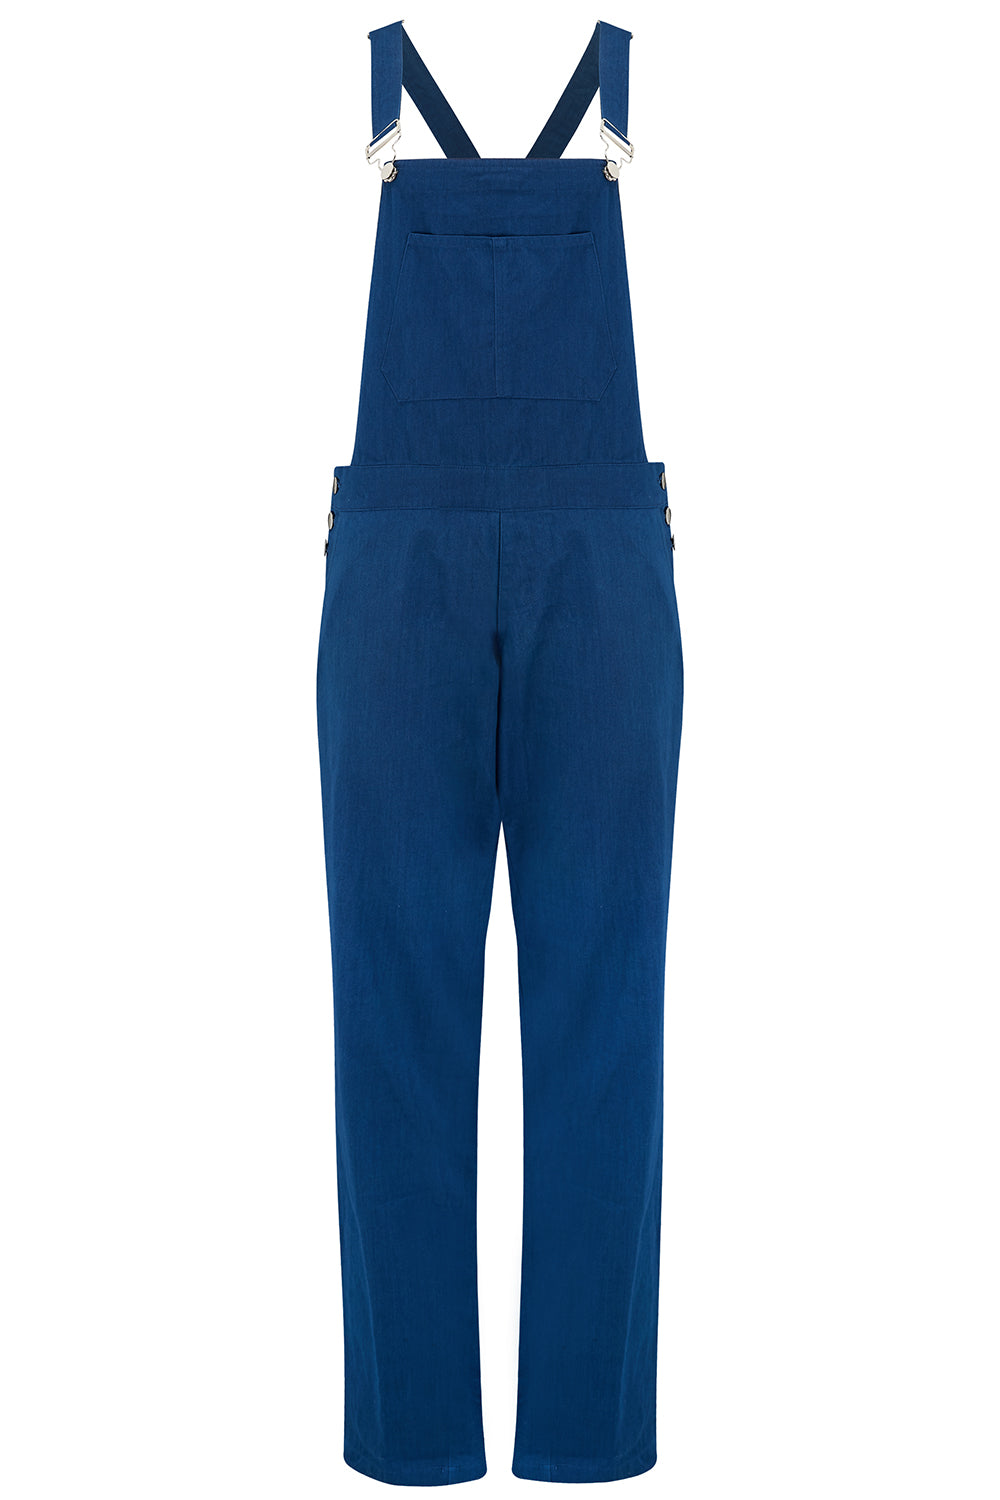 JOHNNY DUNGAREES - NATURAL INDIGO